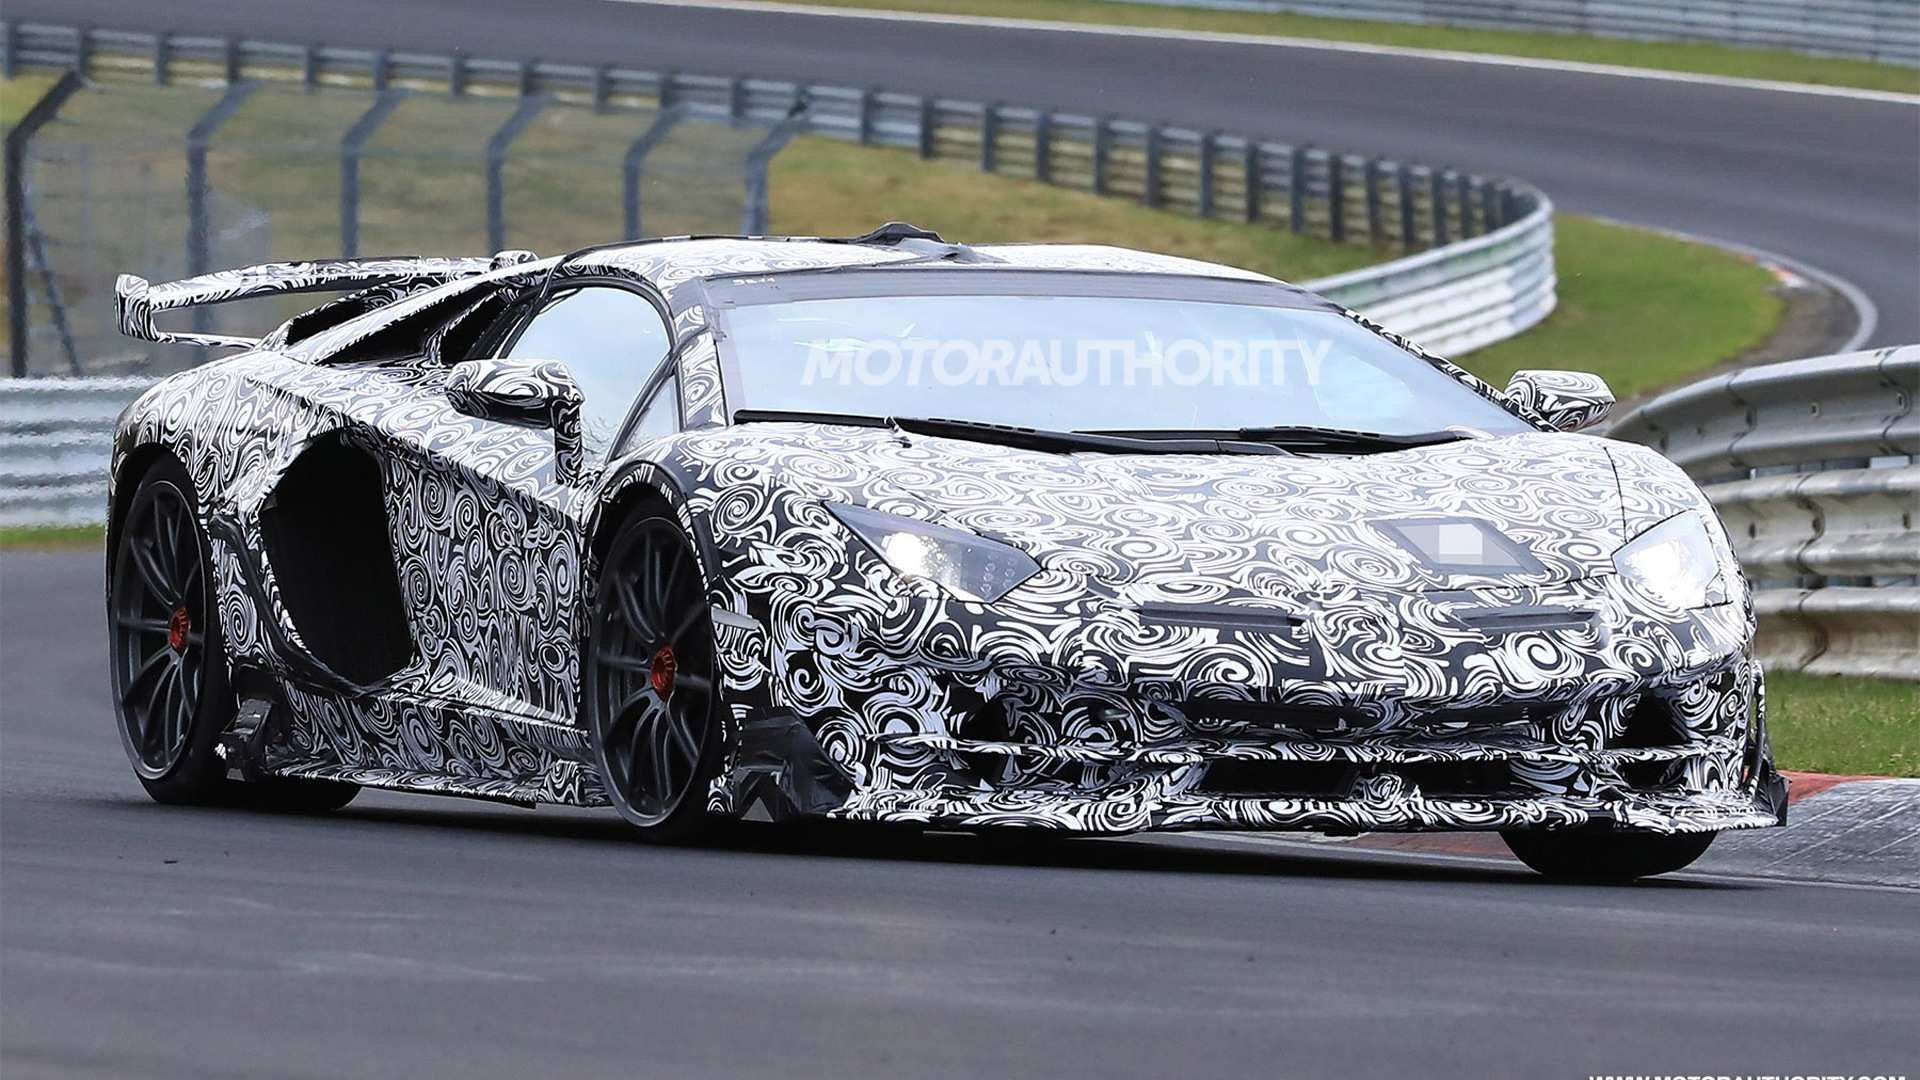 42 Gallery of 2020 Lamborghini Aventador Prices by 2020 Lamborghini Aventador